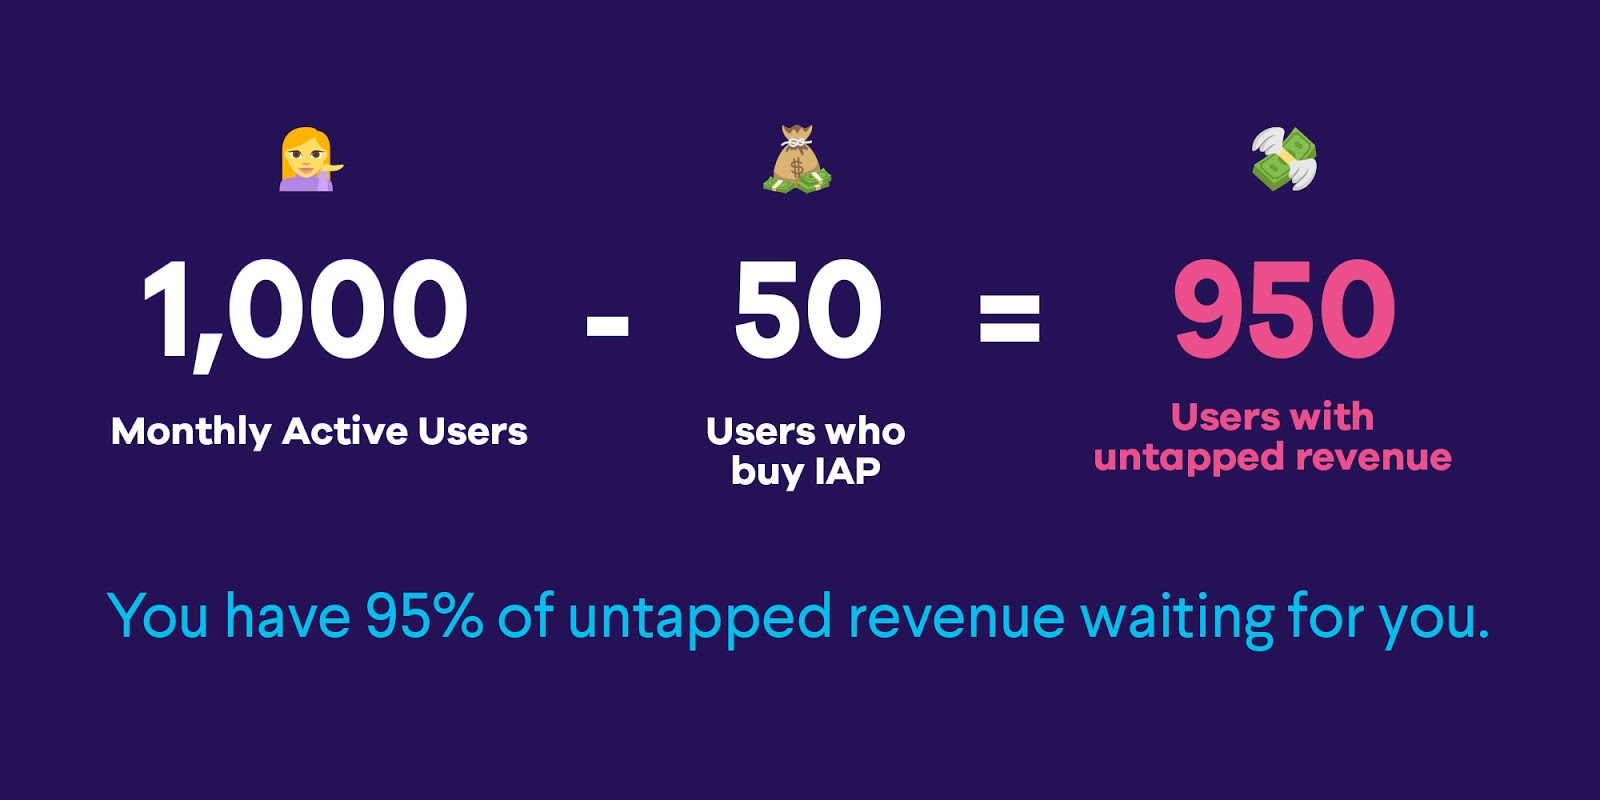 You have 95% of untapped revenue waiting for you